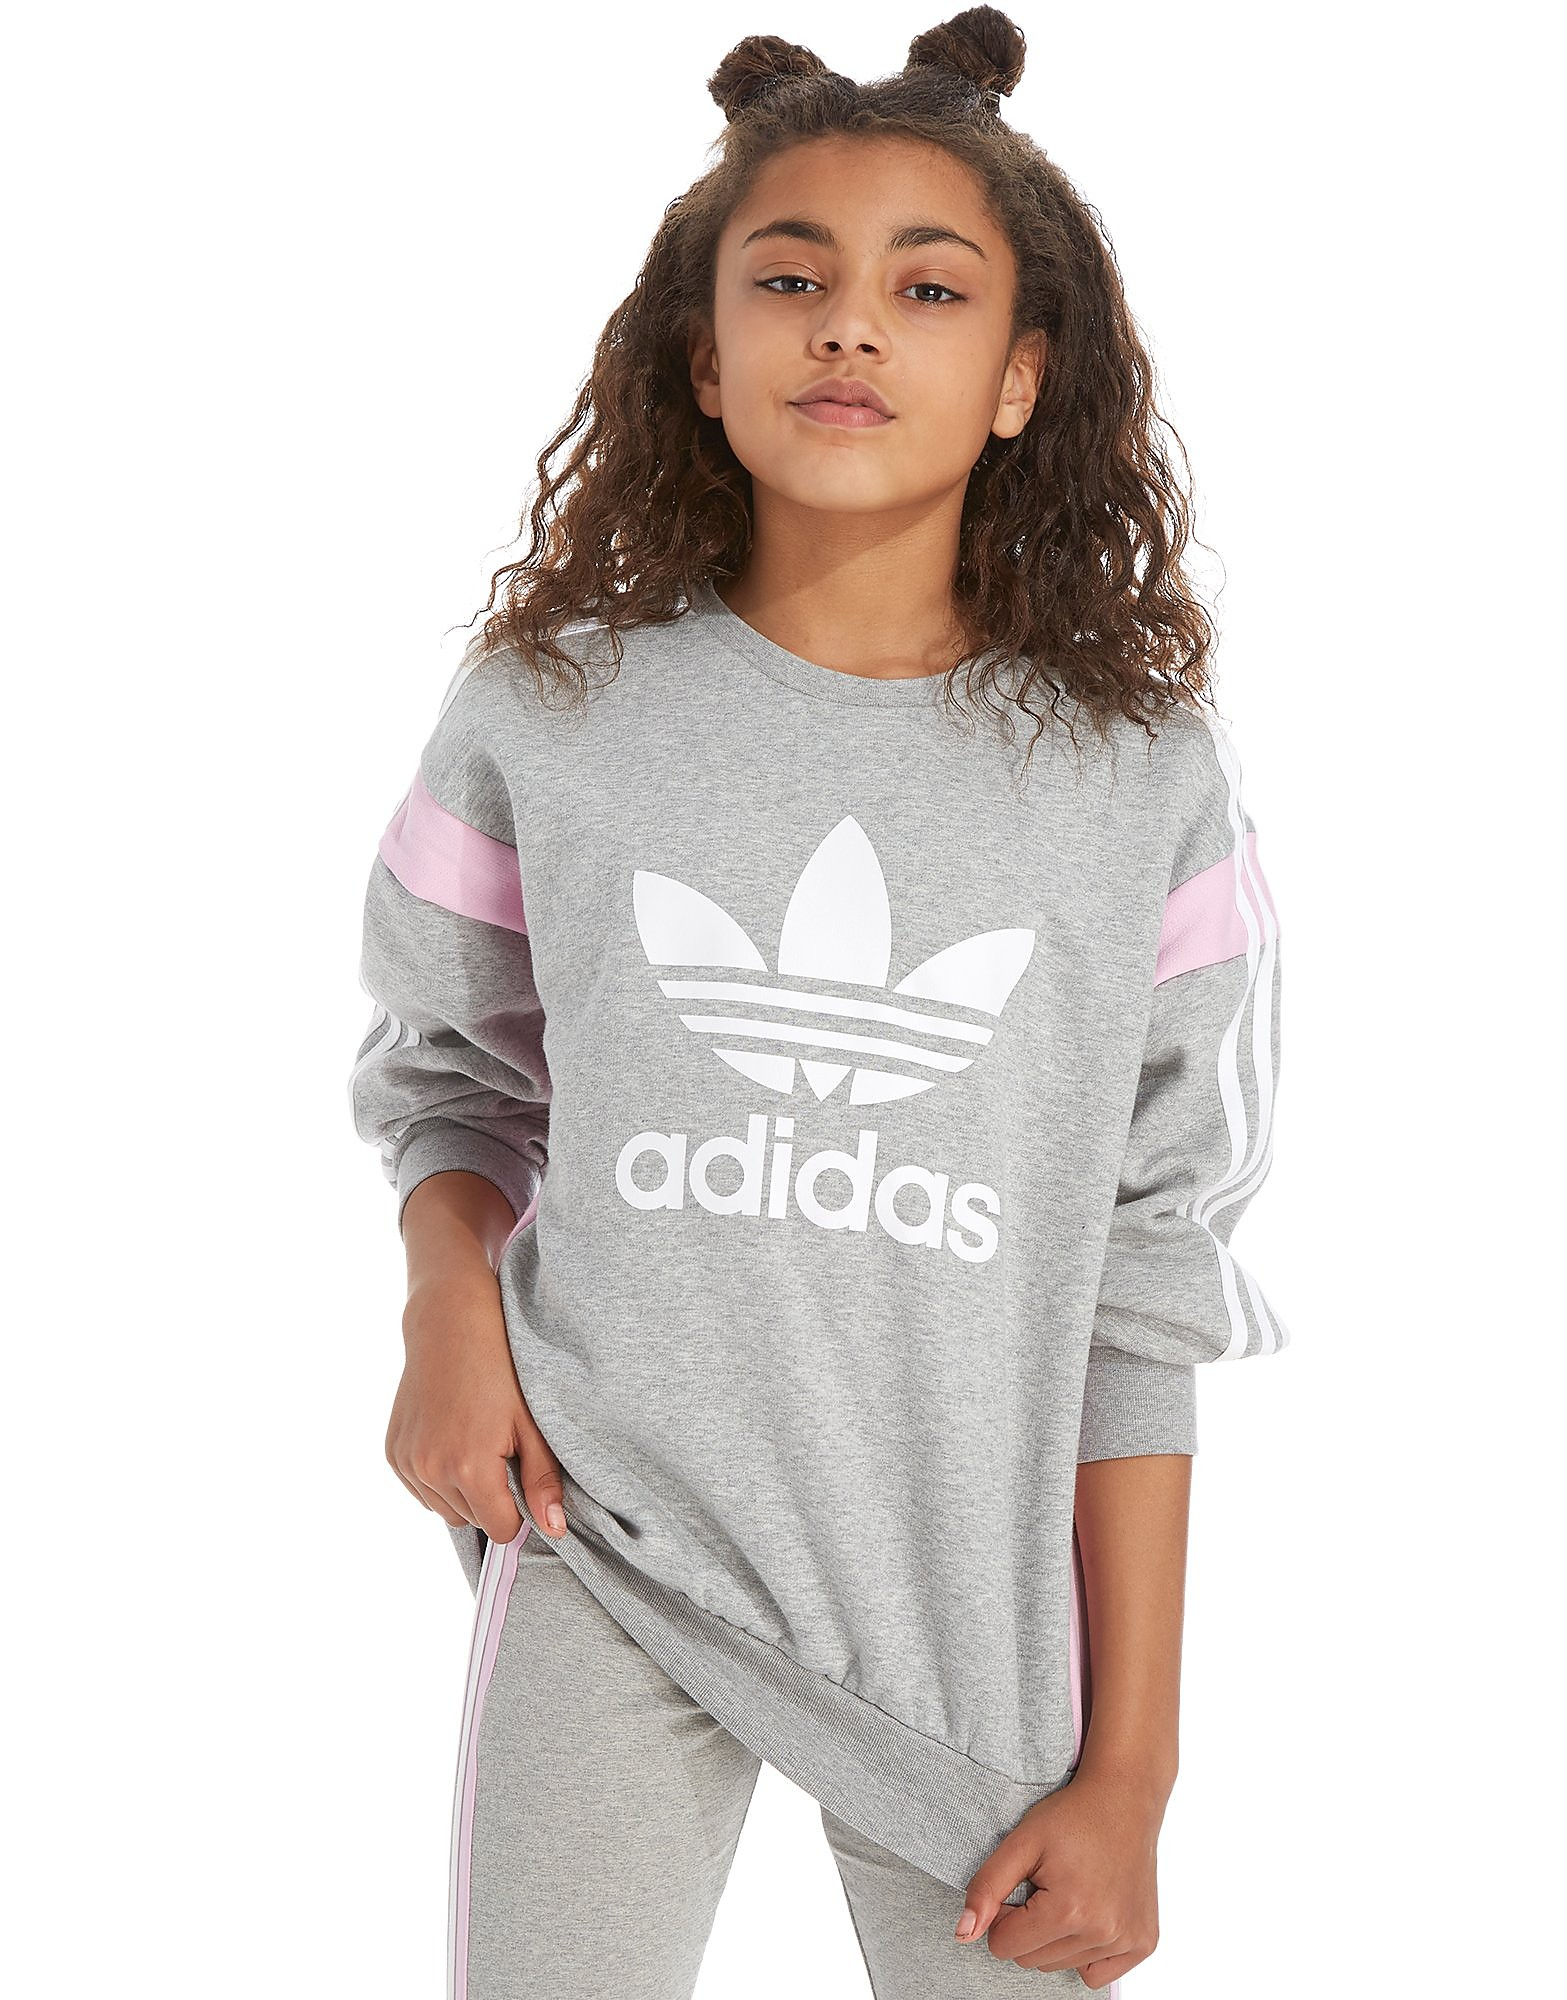 adidas Originals sudadera Boyfriend Fit júnior